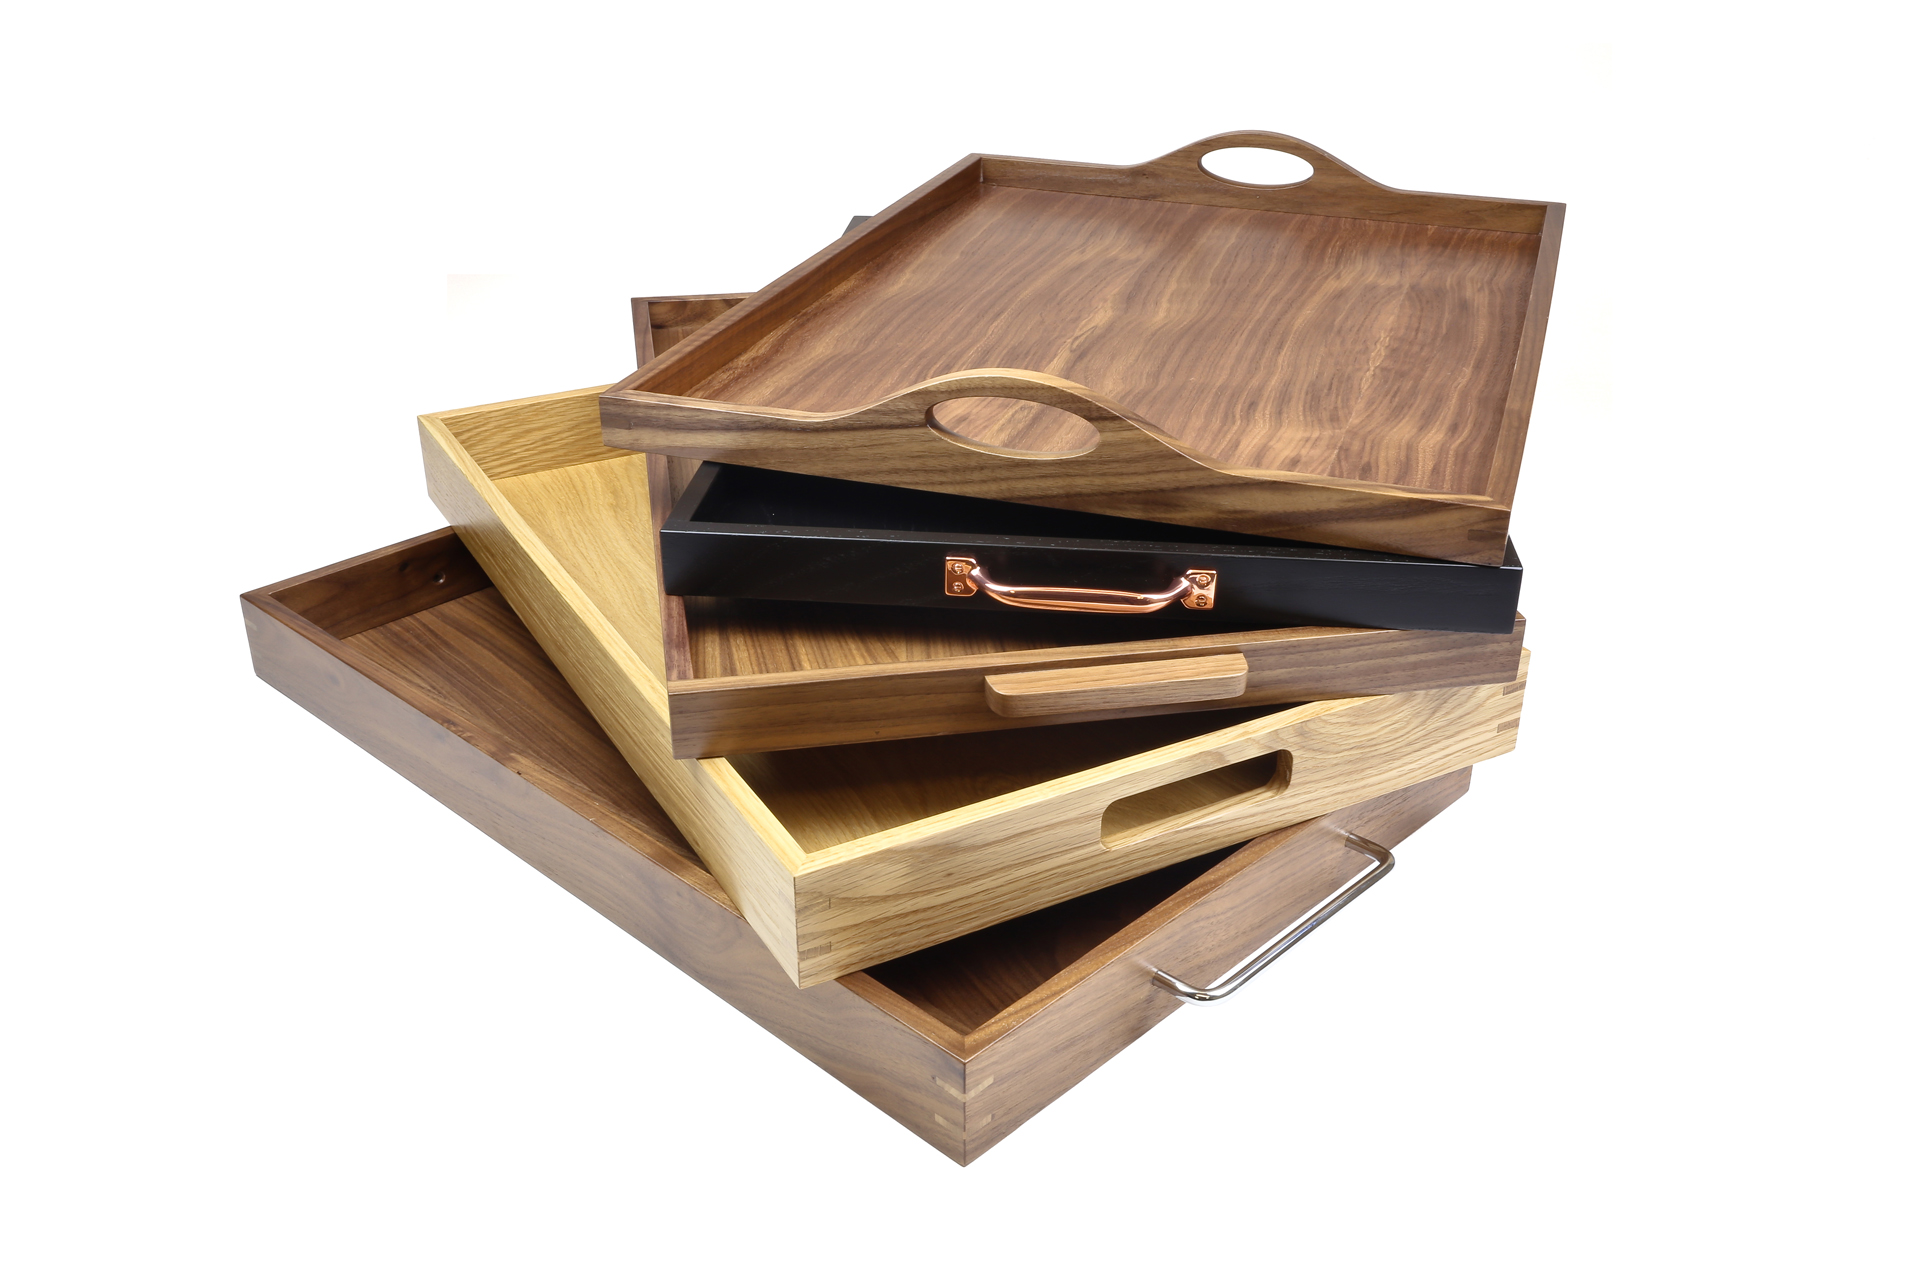 bespoke wooden hospitailty tray wood room service